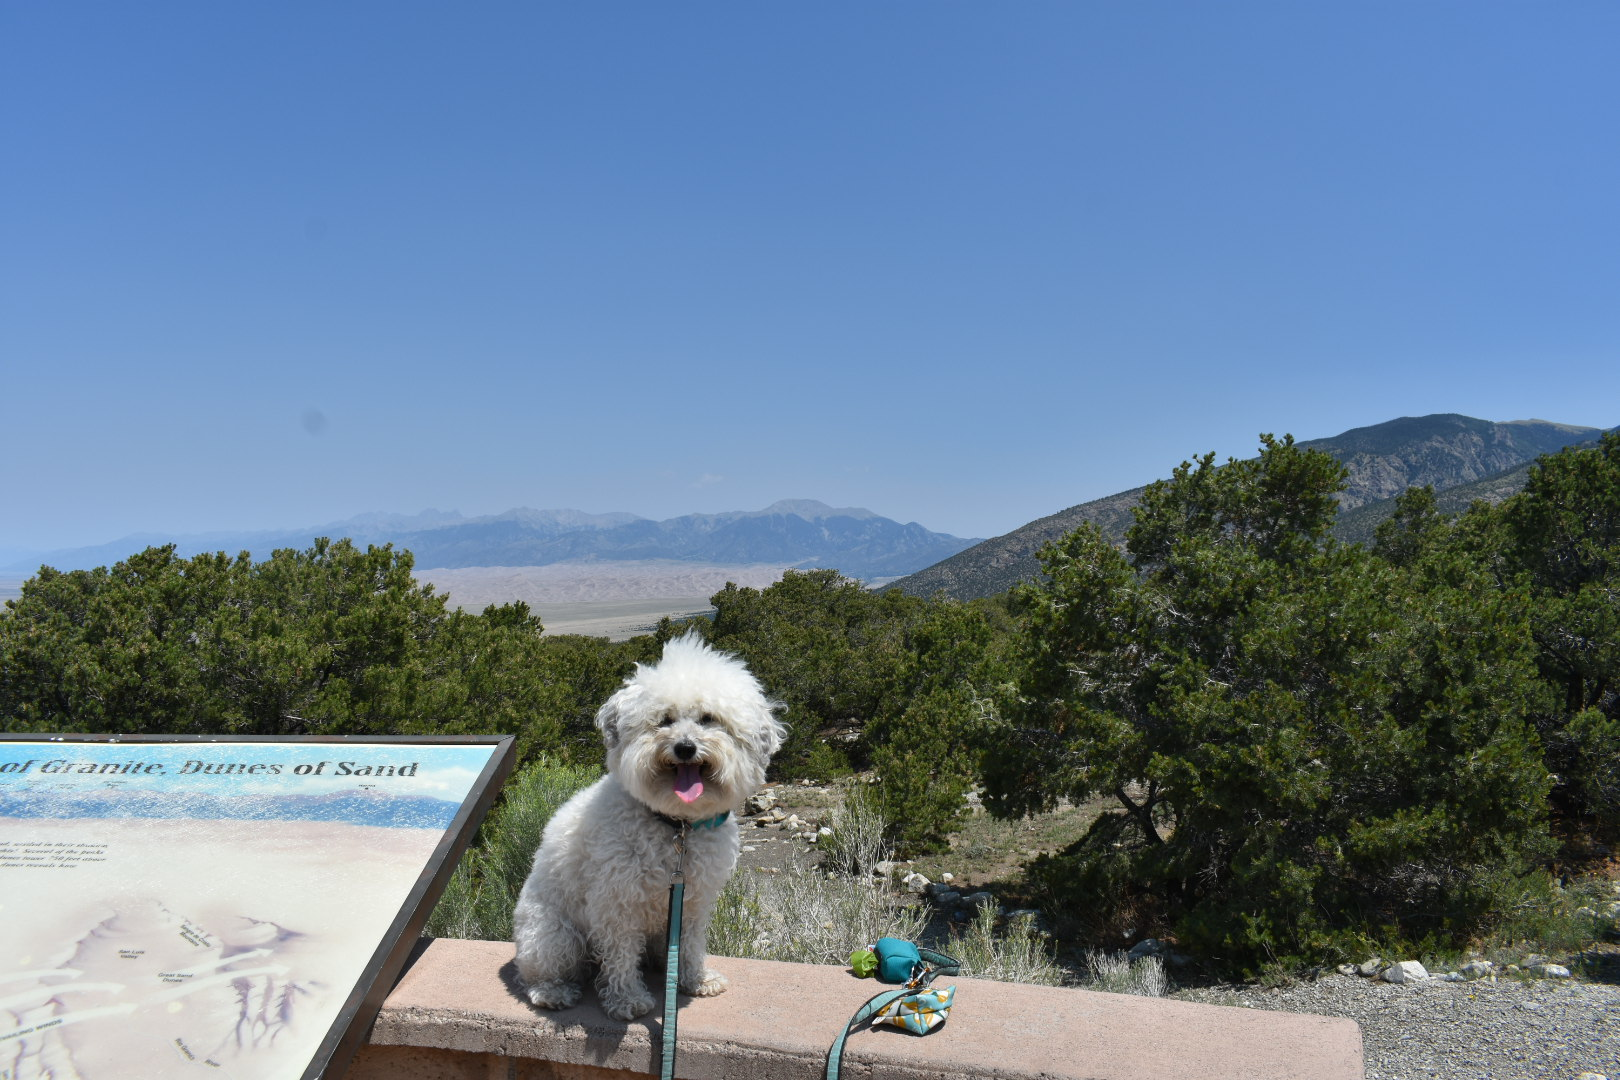 Watson at Great Sand Dunes National Park, Colorado | Watson & Walls